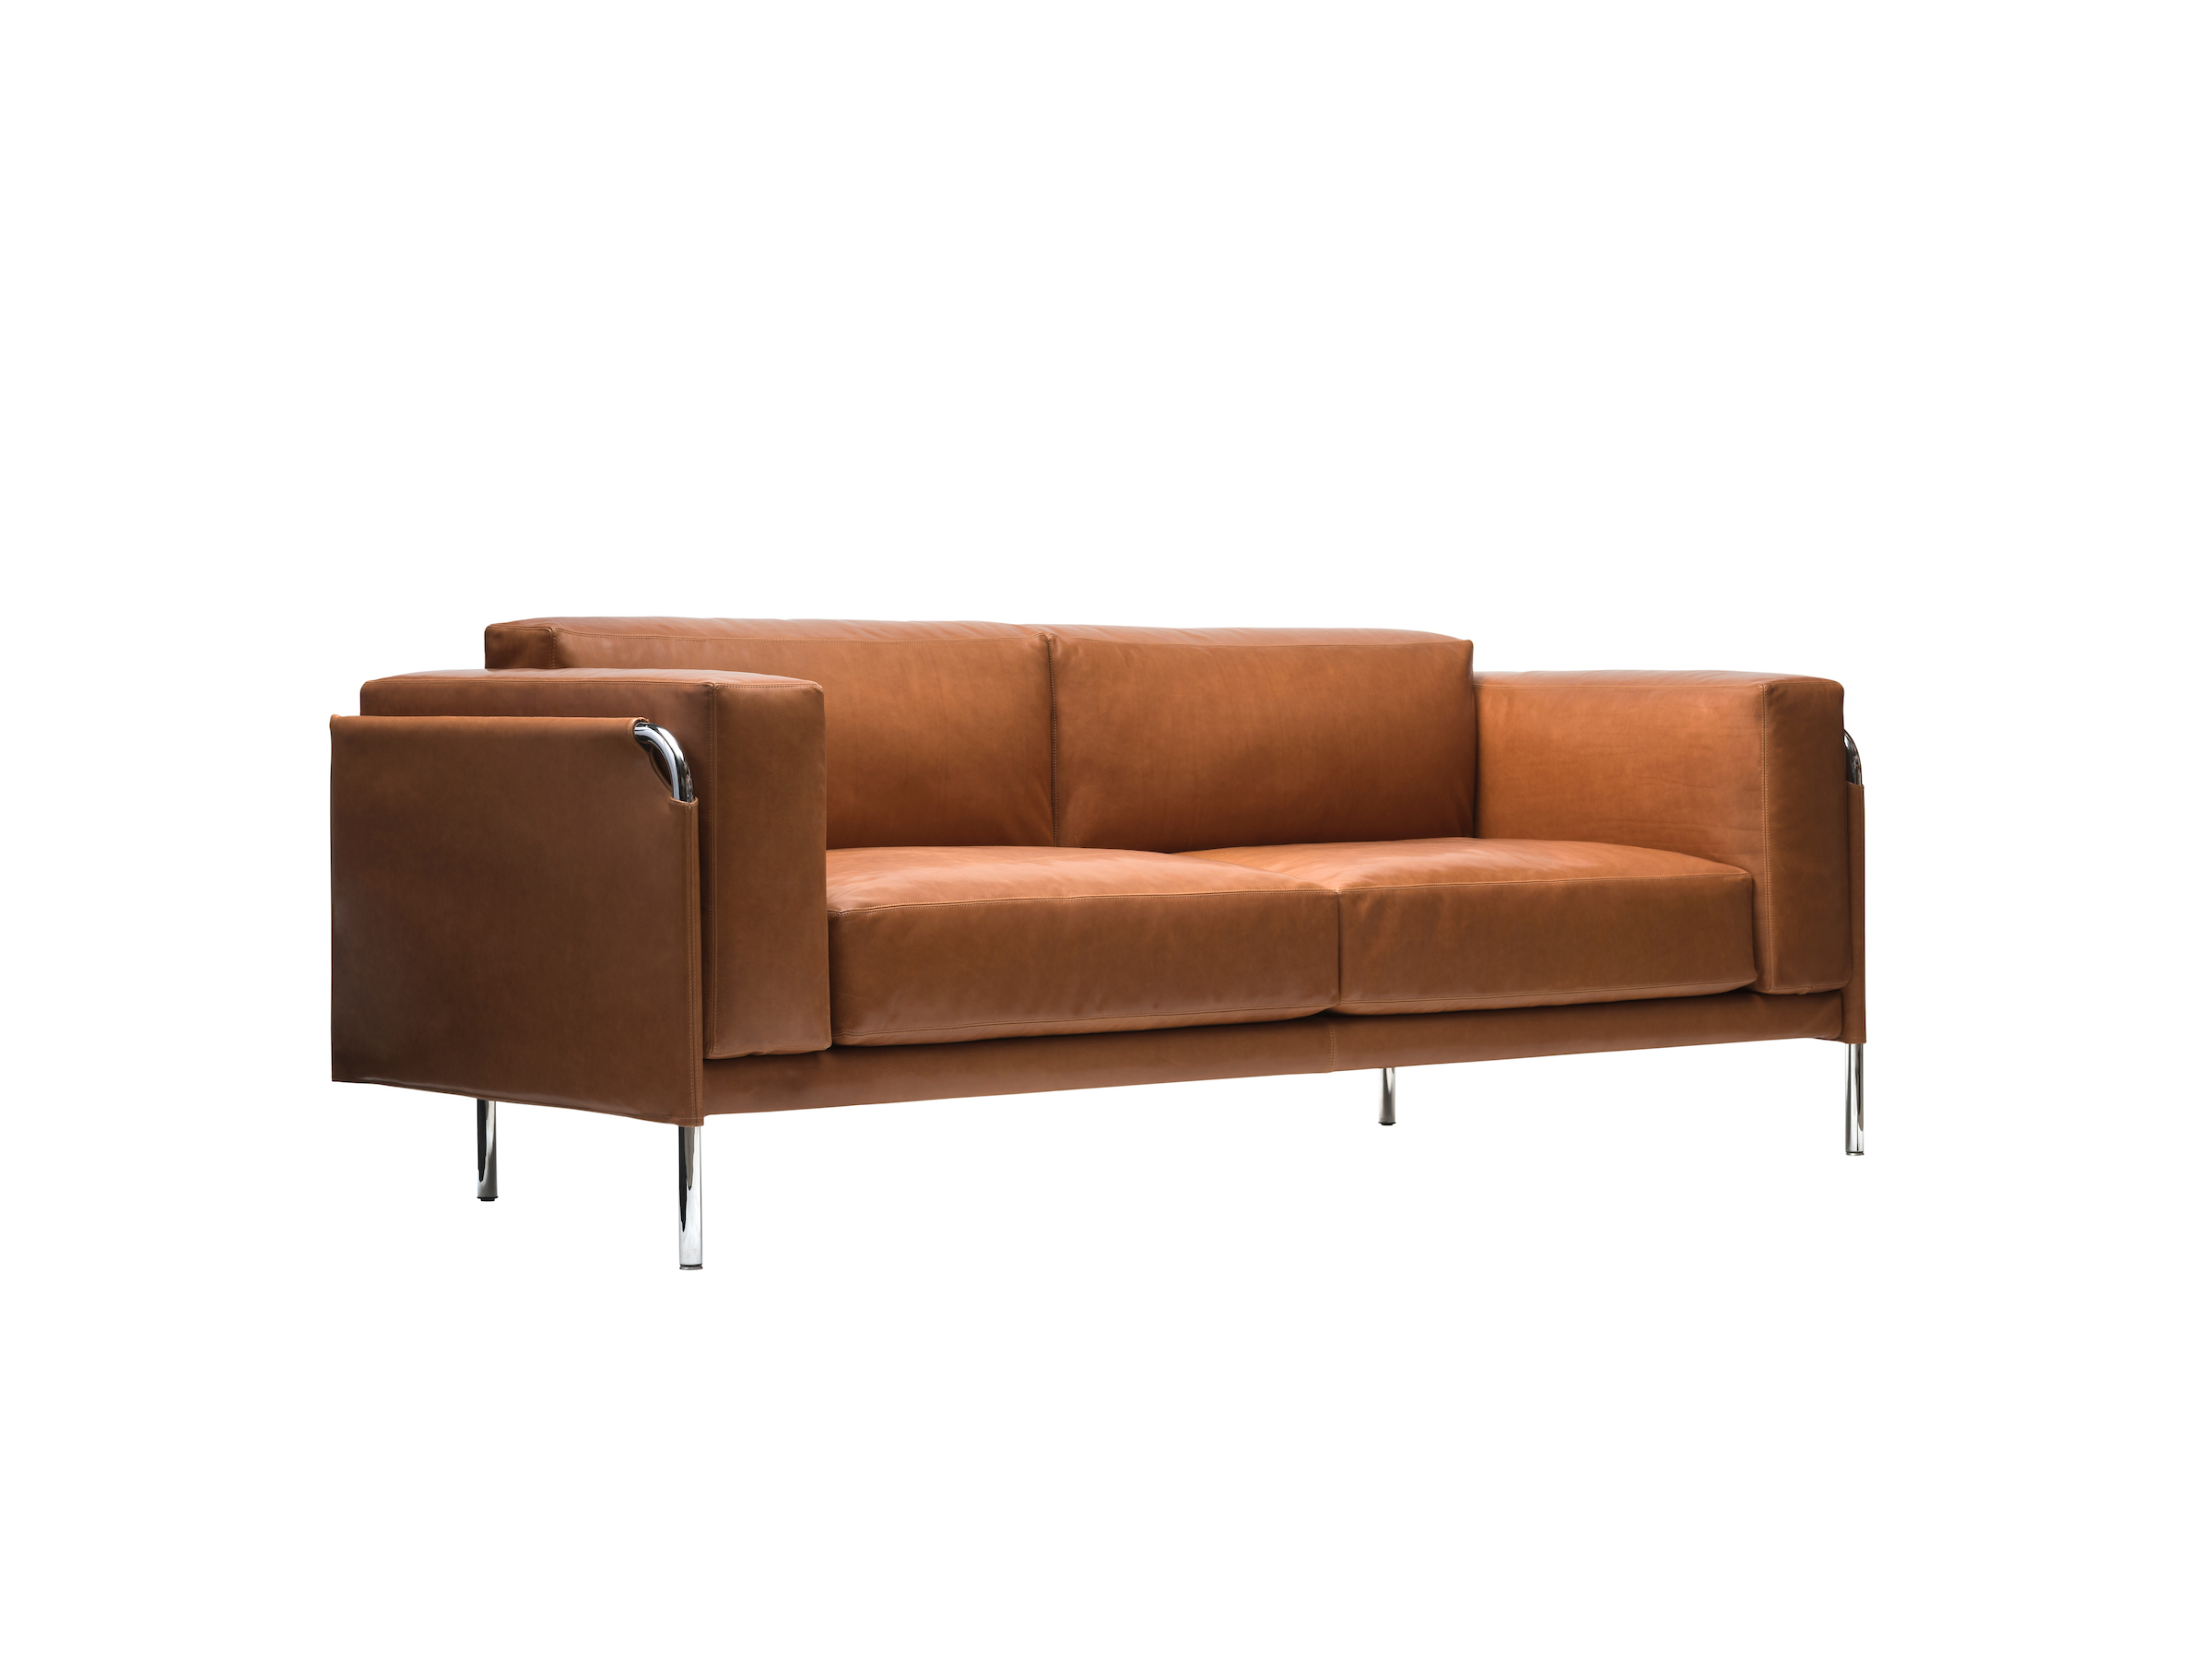 Dutch Sofa 3-zits bank